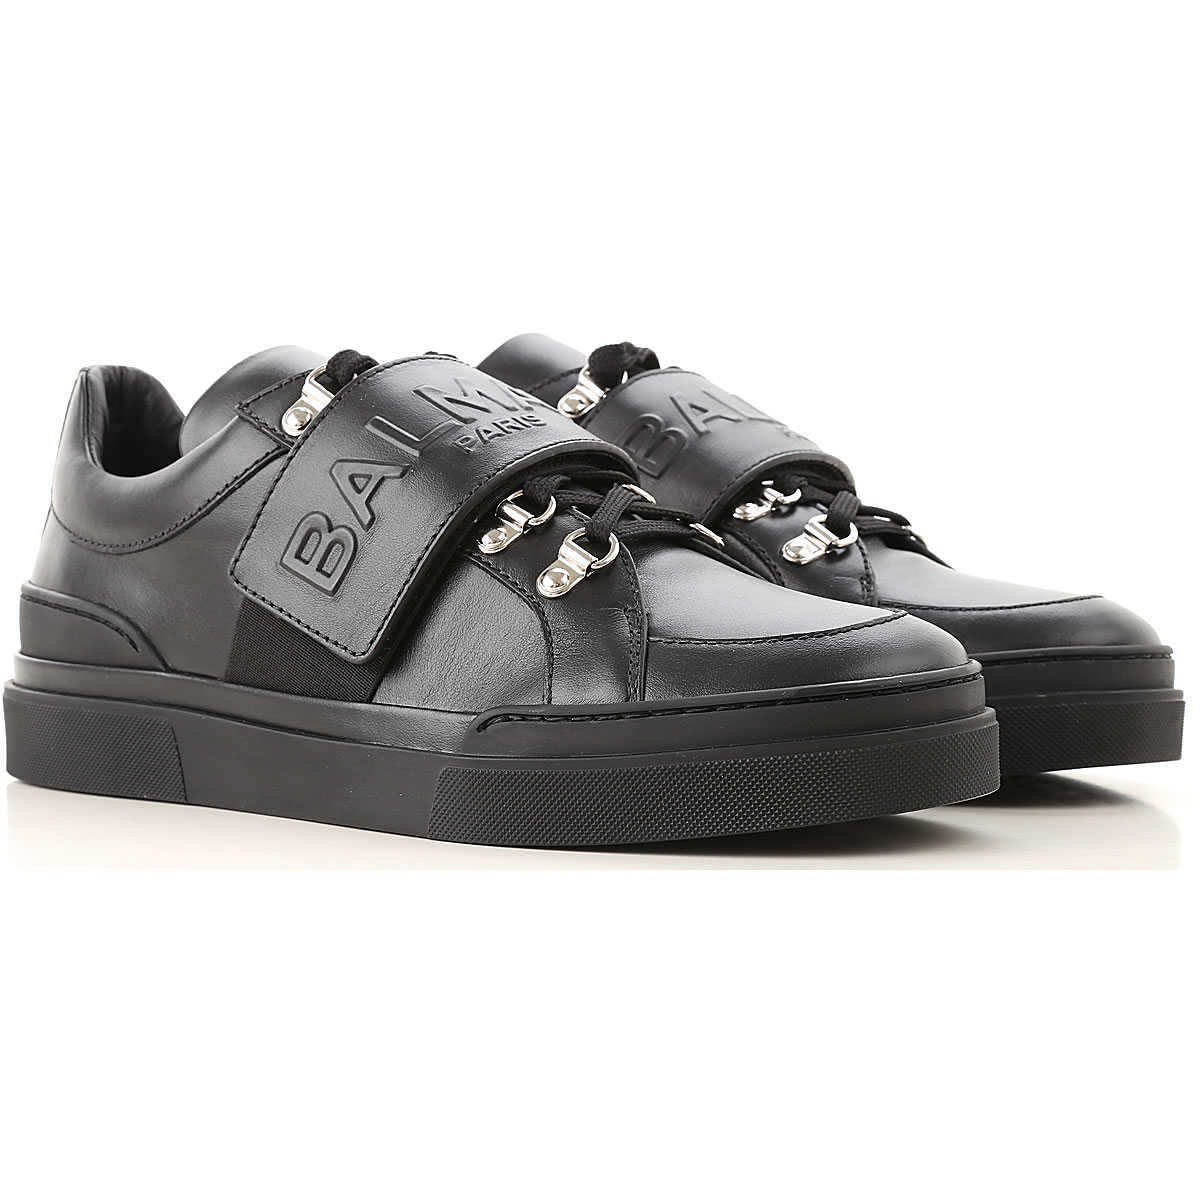 Balmain Sneakers for Men On Sale in Outlet Black - GOOFASH